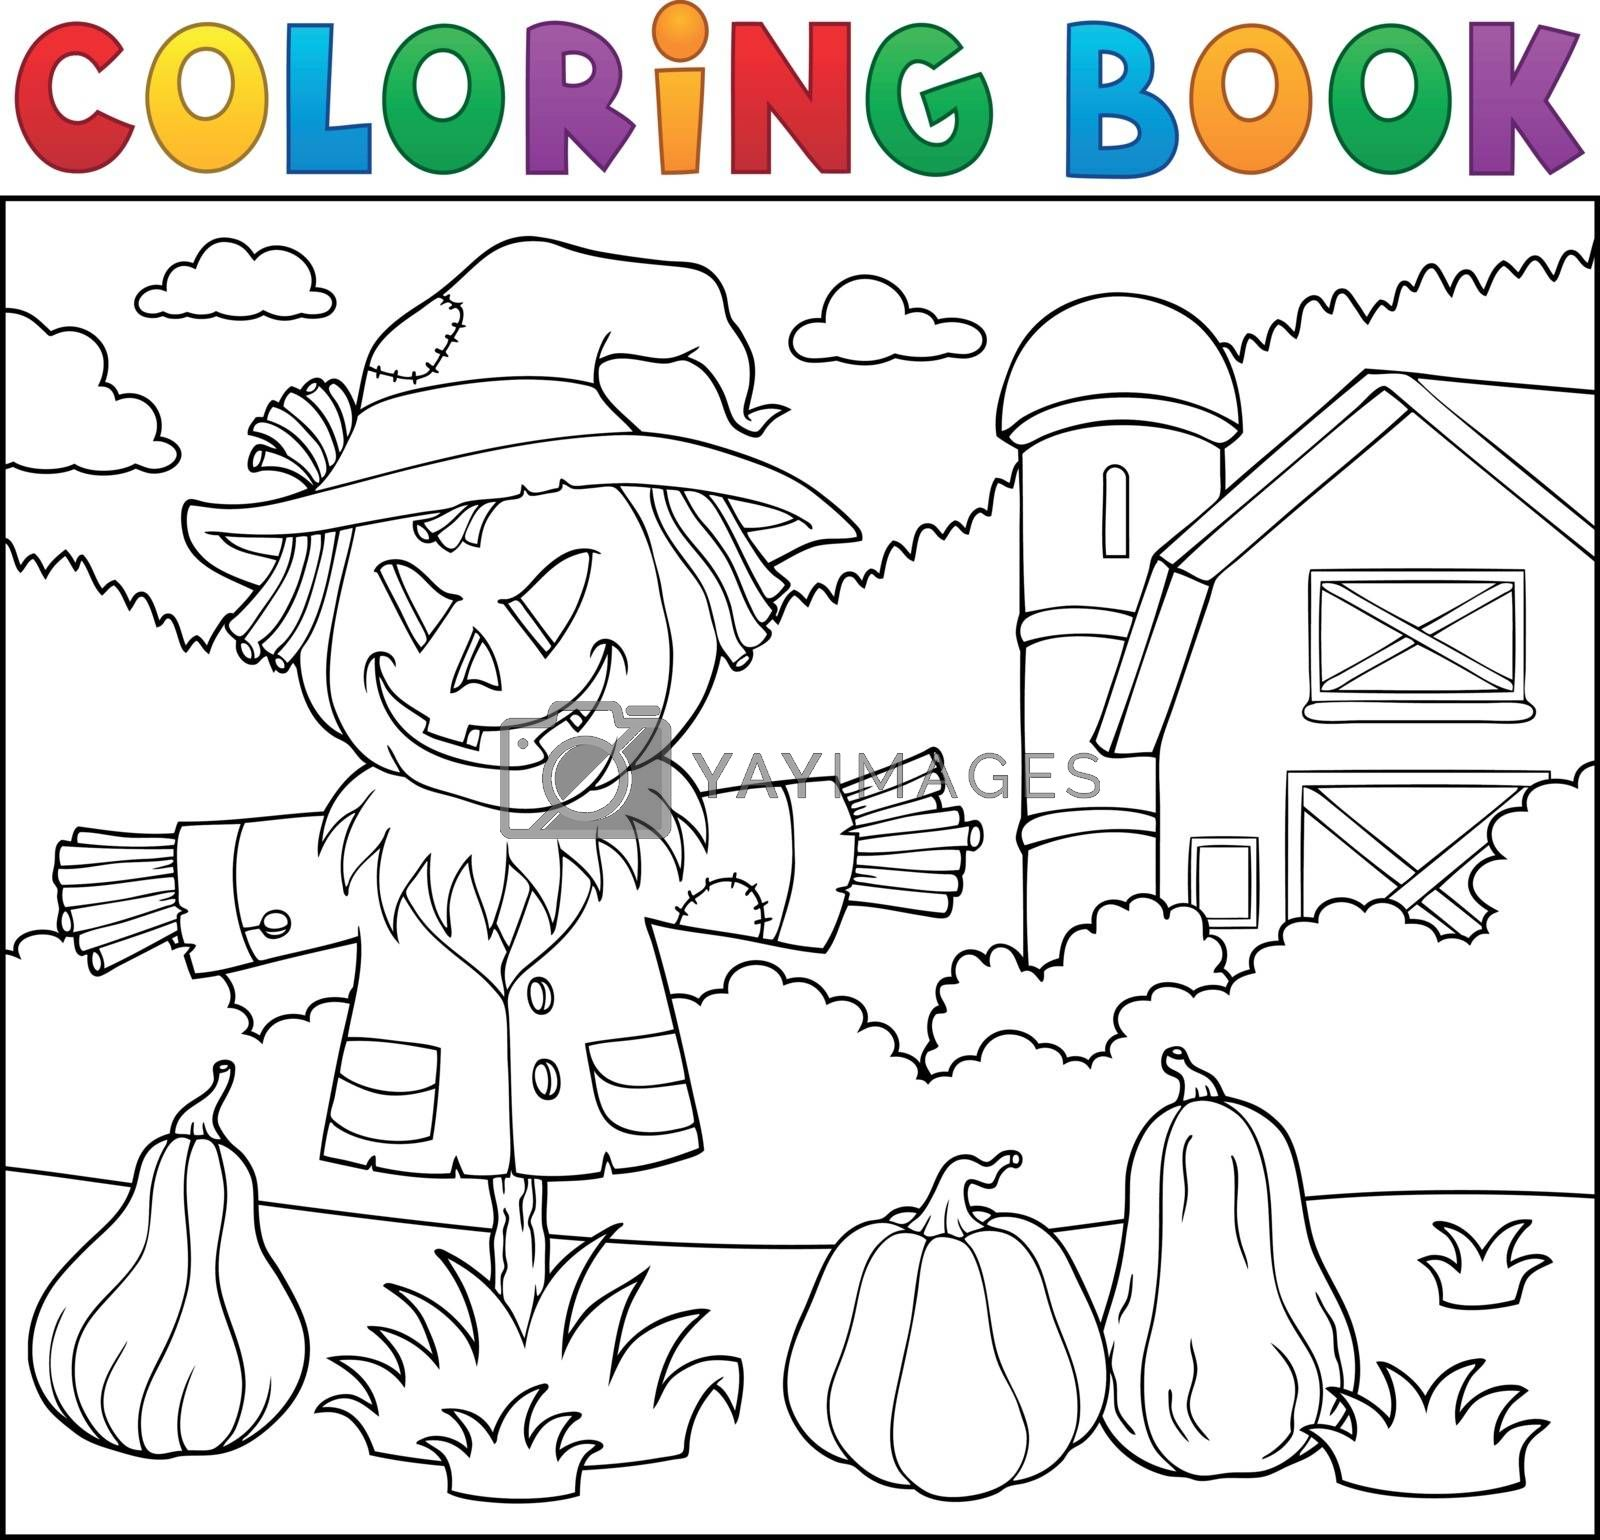 Coloring book scarecrow topic 2 - eps10 vector illustration.